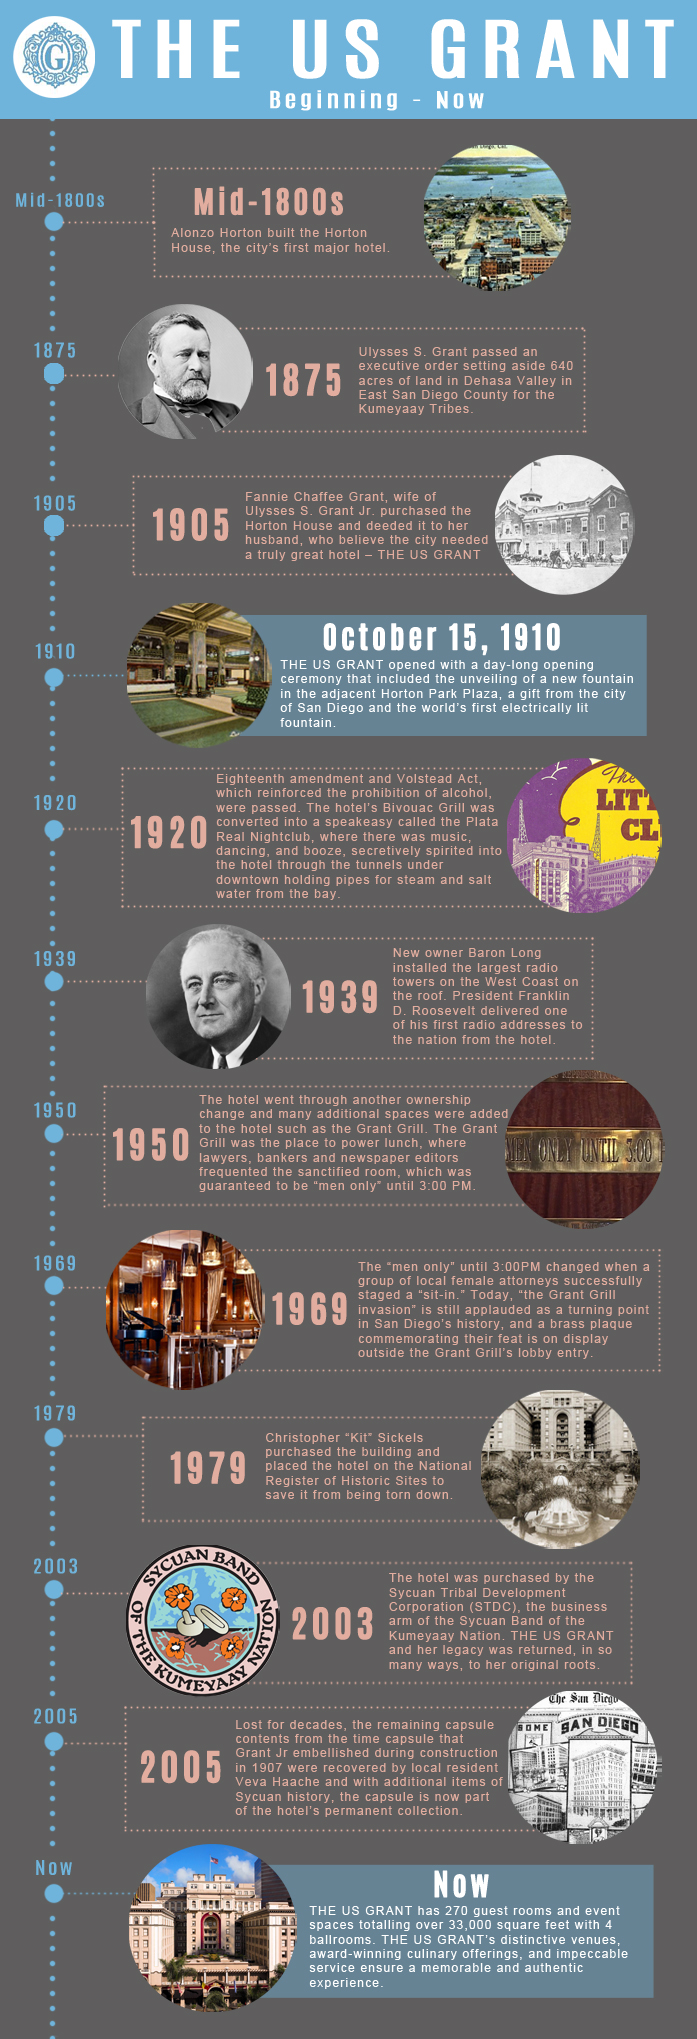 Historical Timeline of THE US GRANT